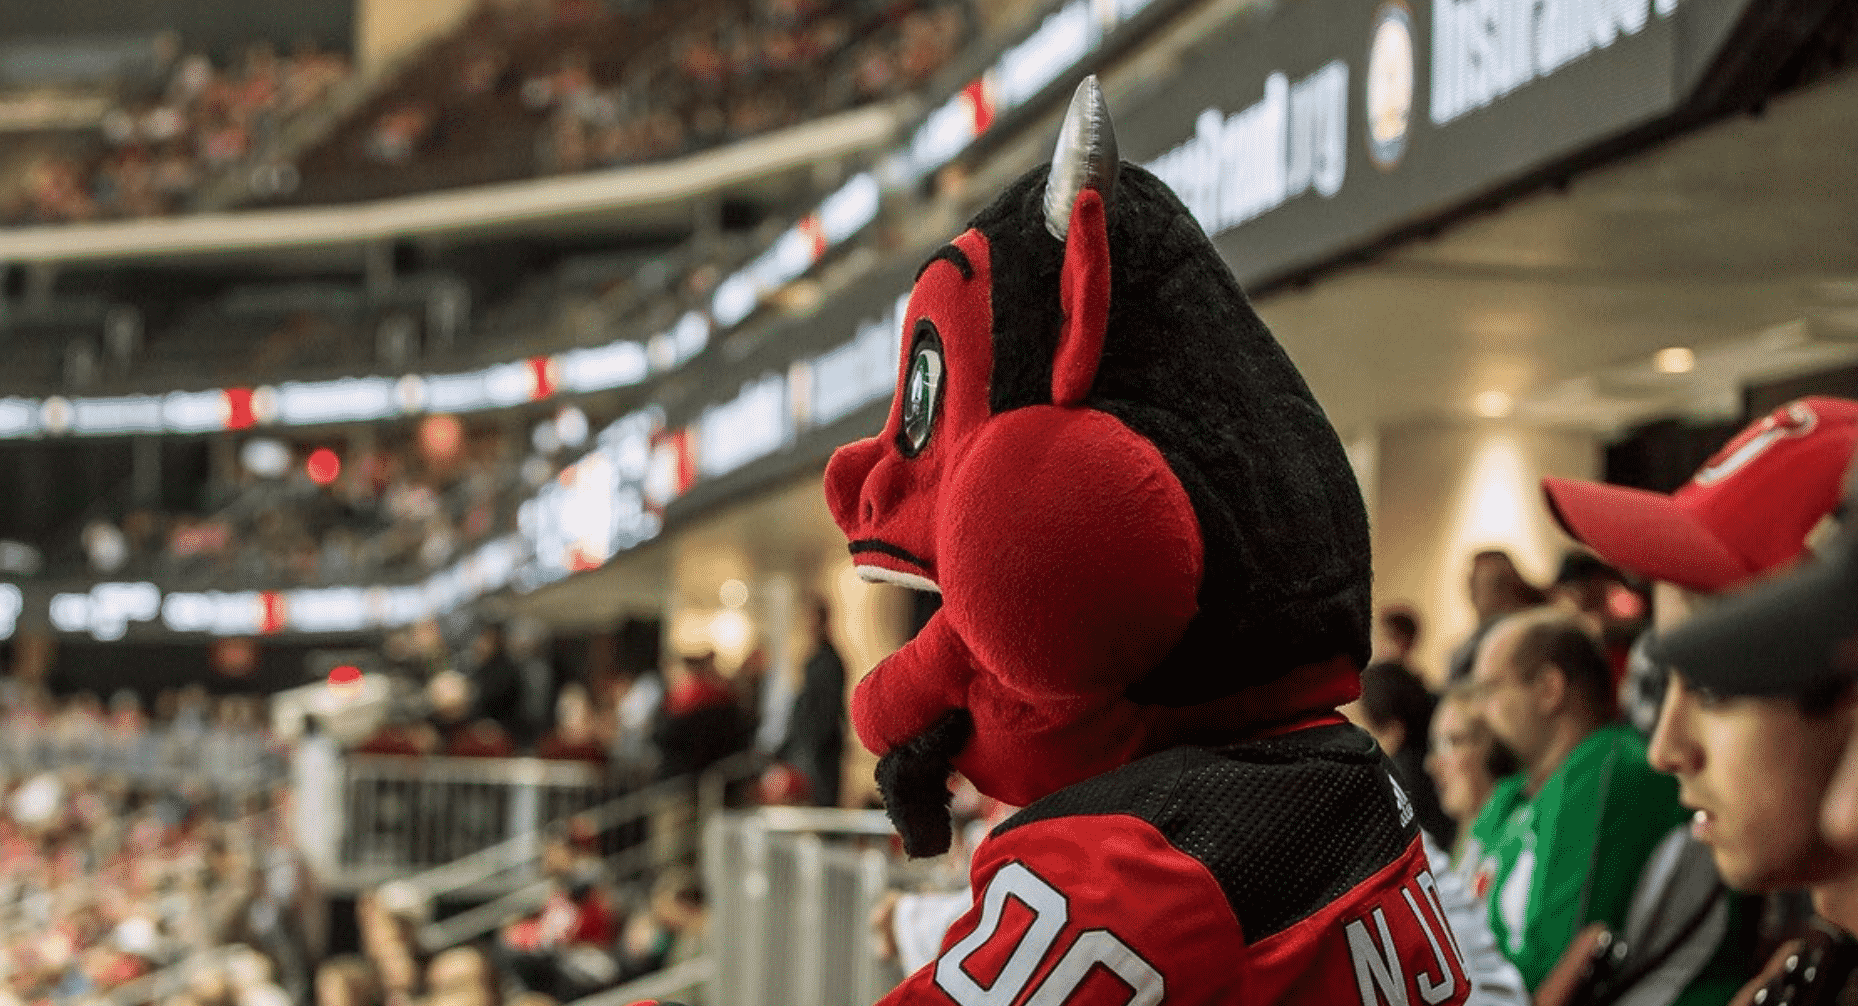 New Jersey Devils video: Mascot hilariously breaks window